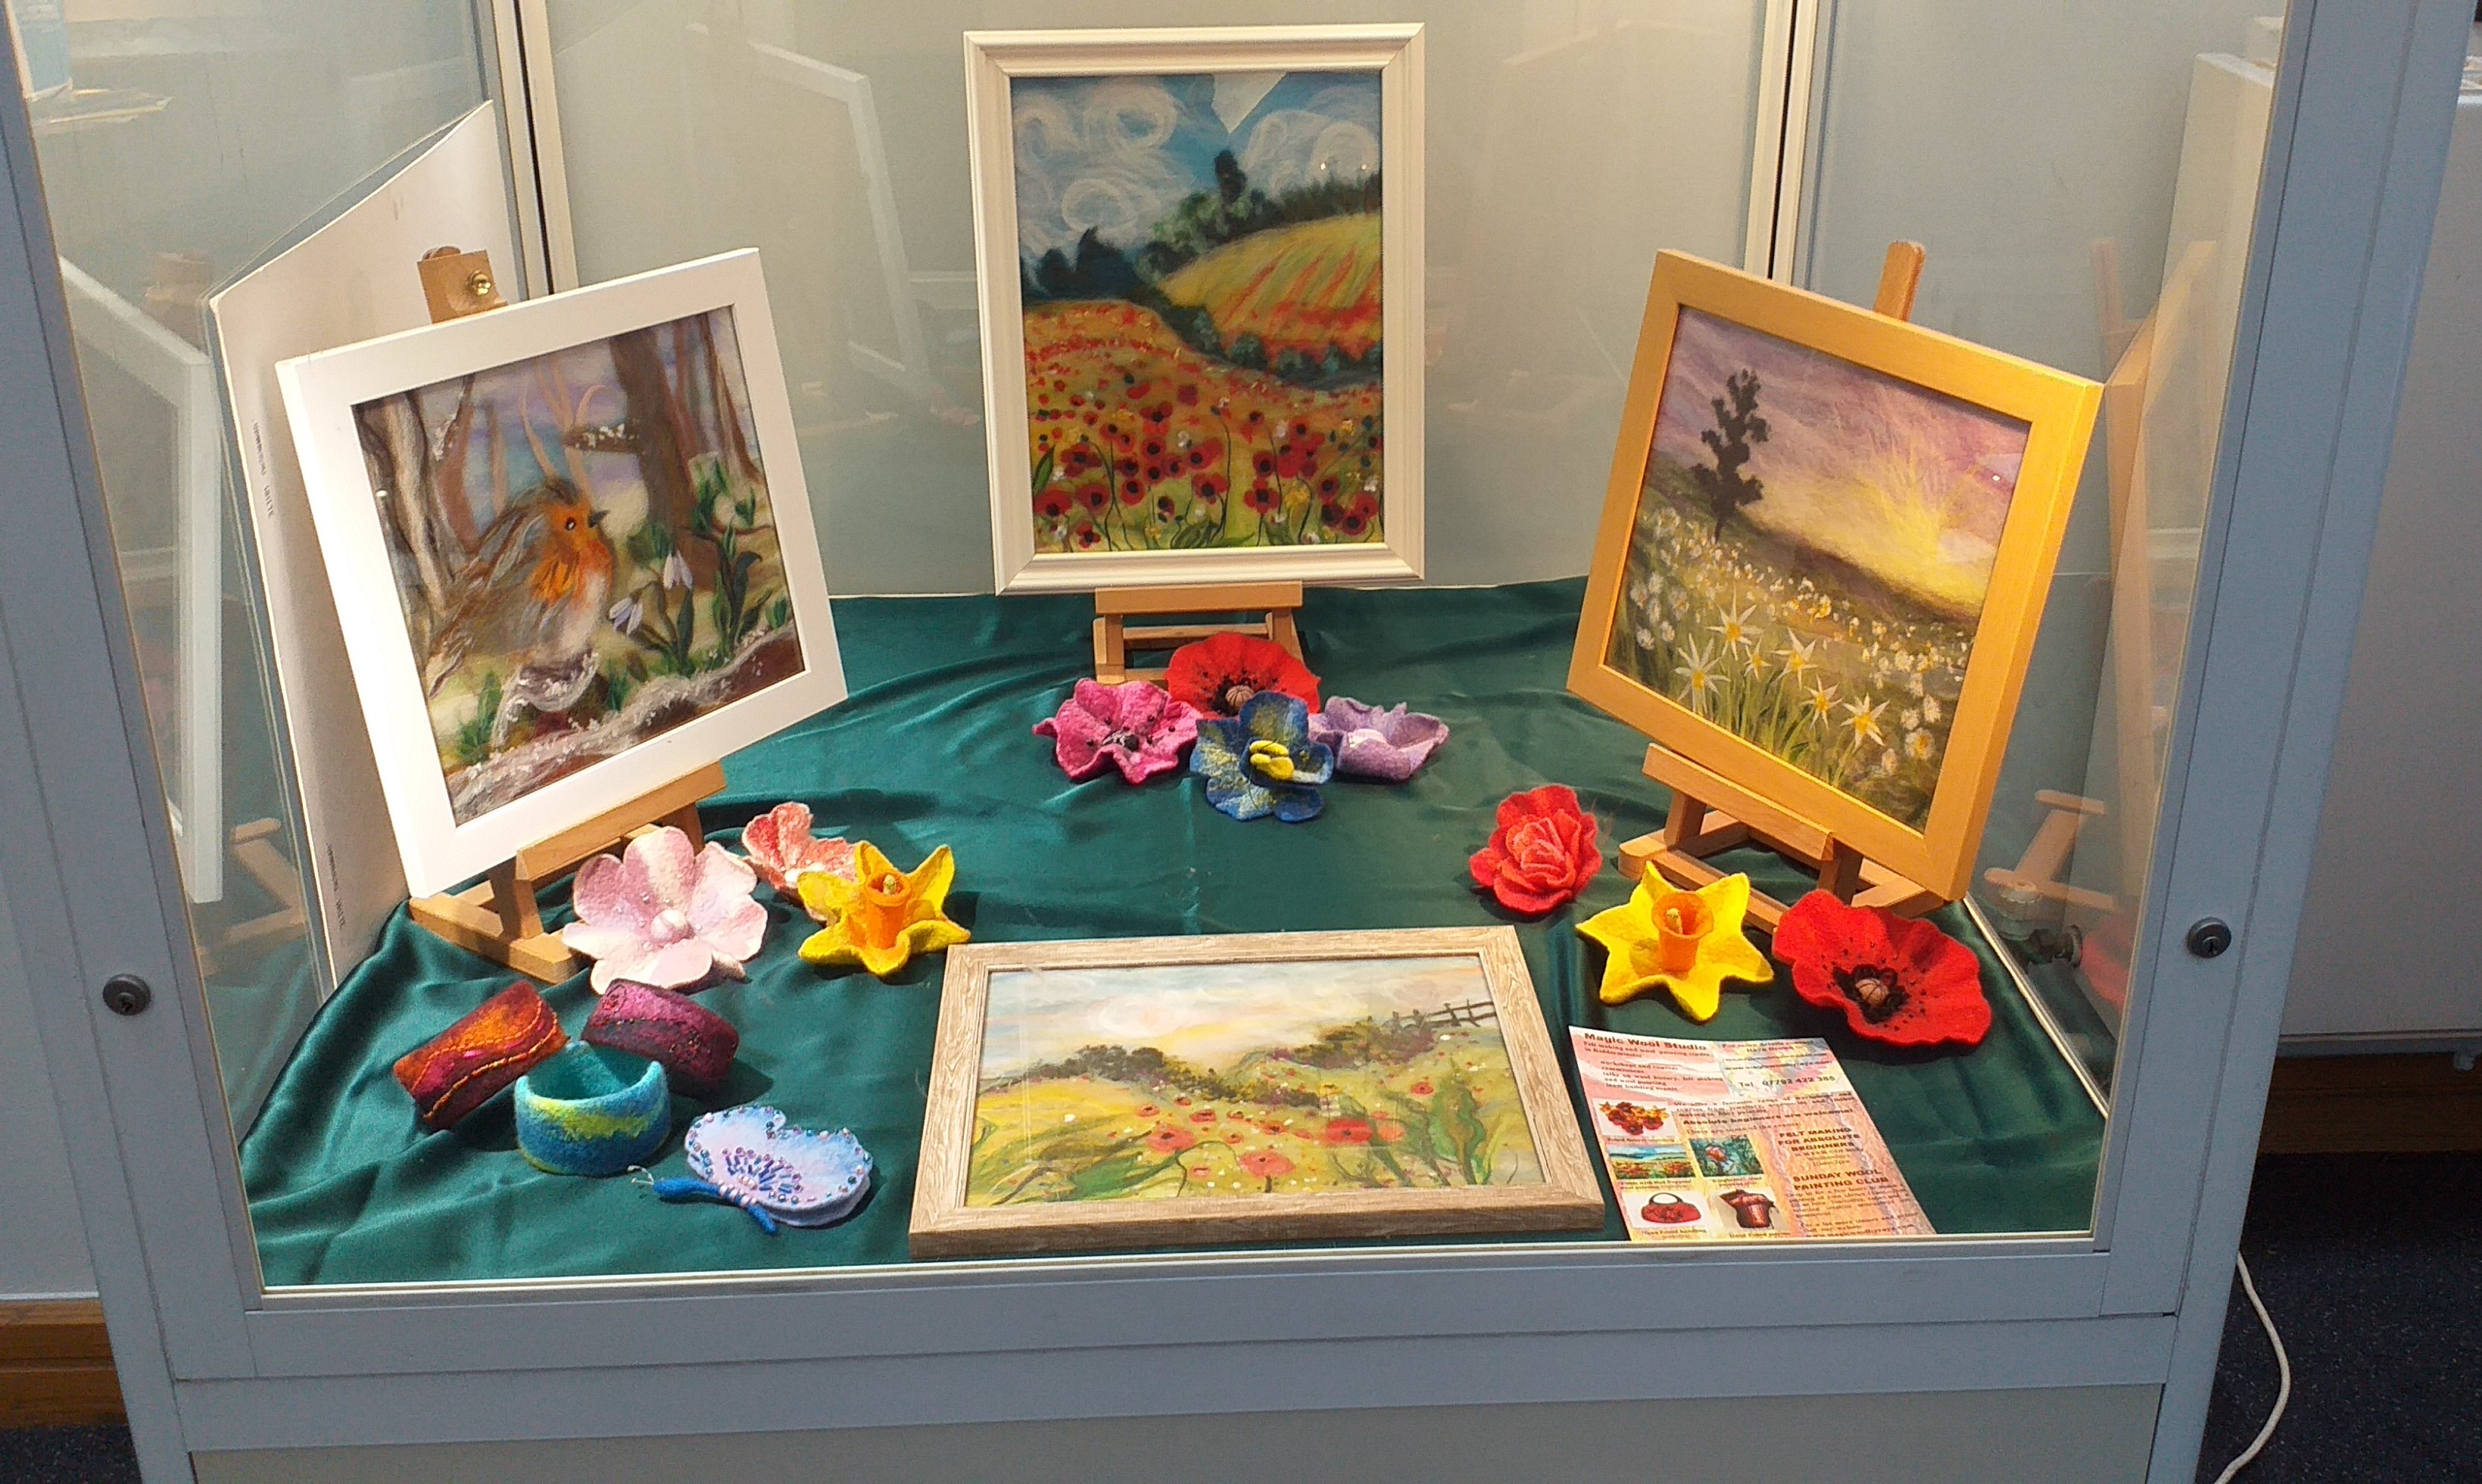 Wool paintings by complete beginners in Art displayed at Kiddermisnter library